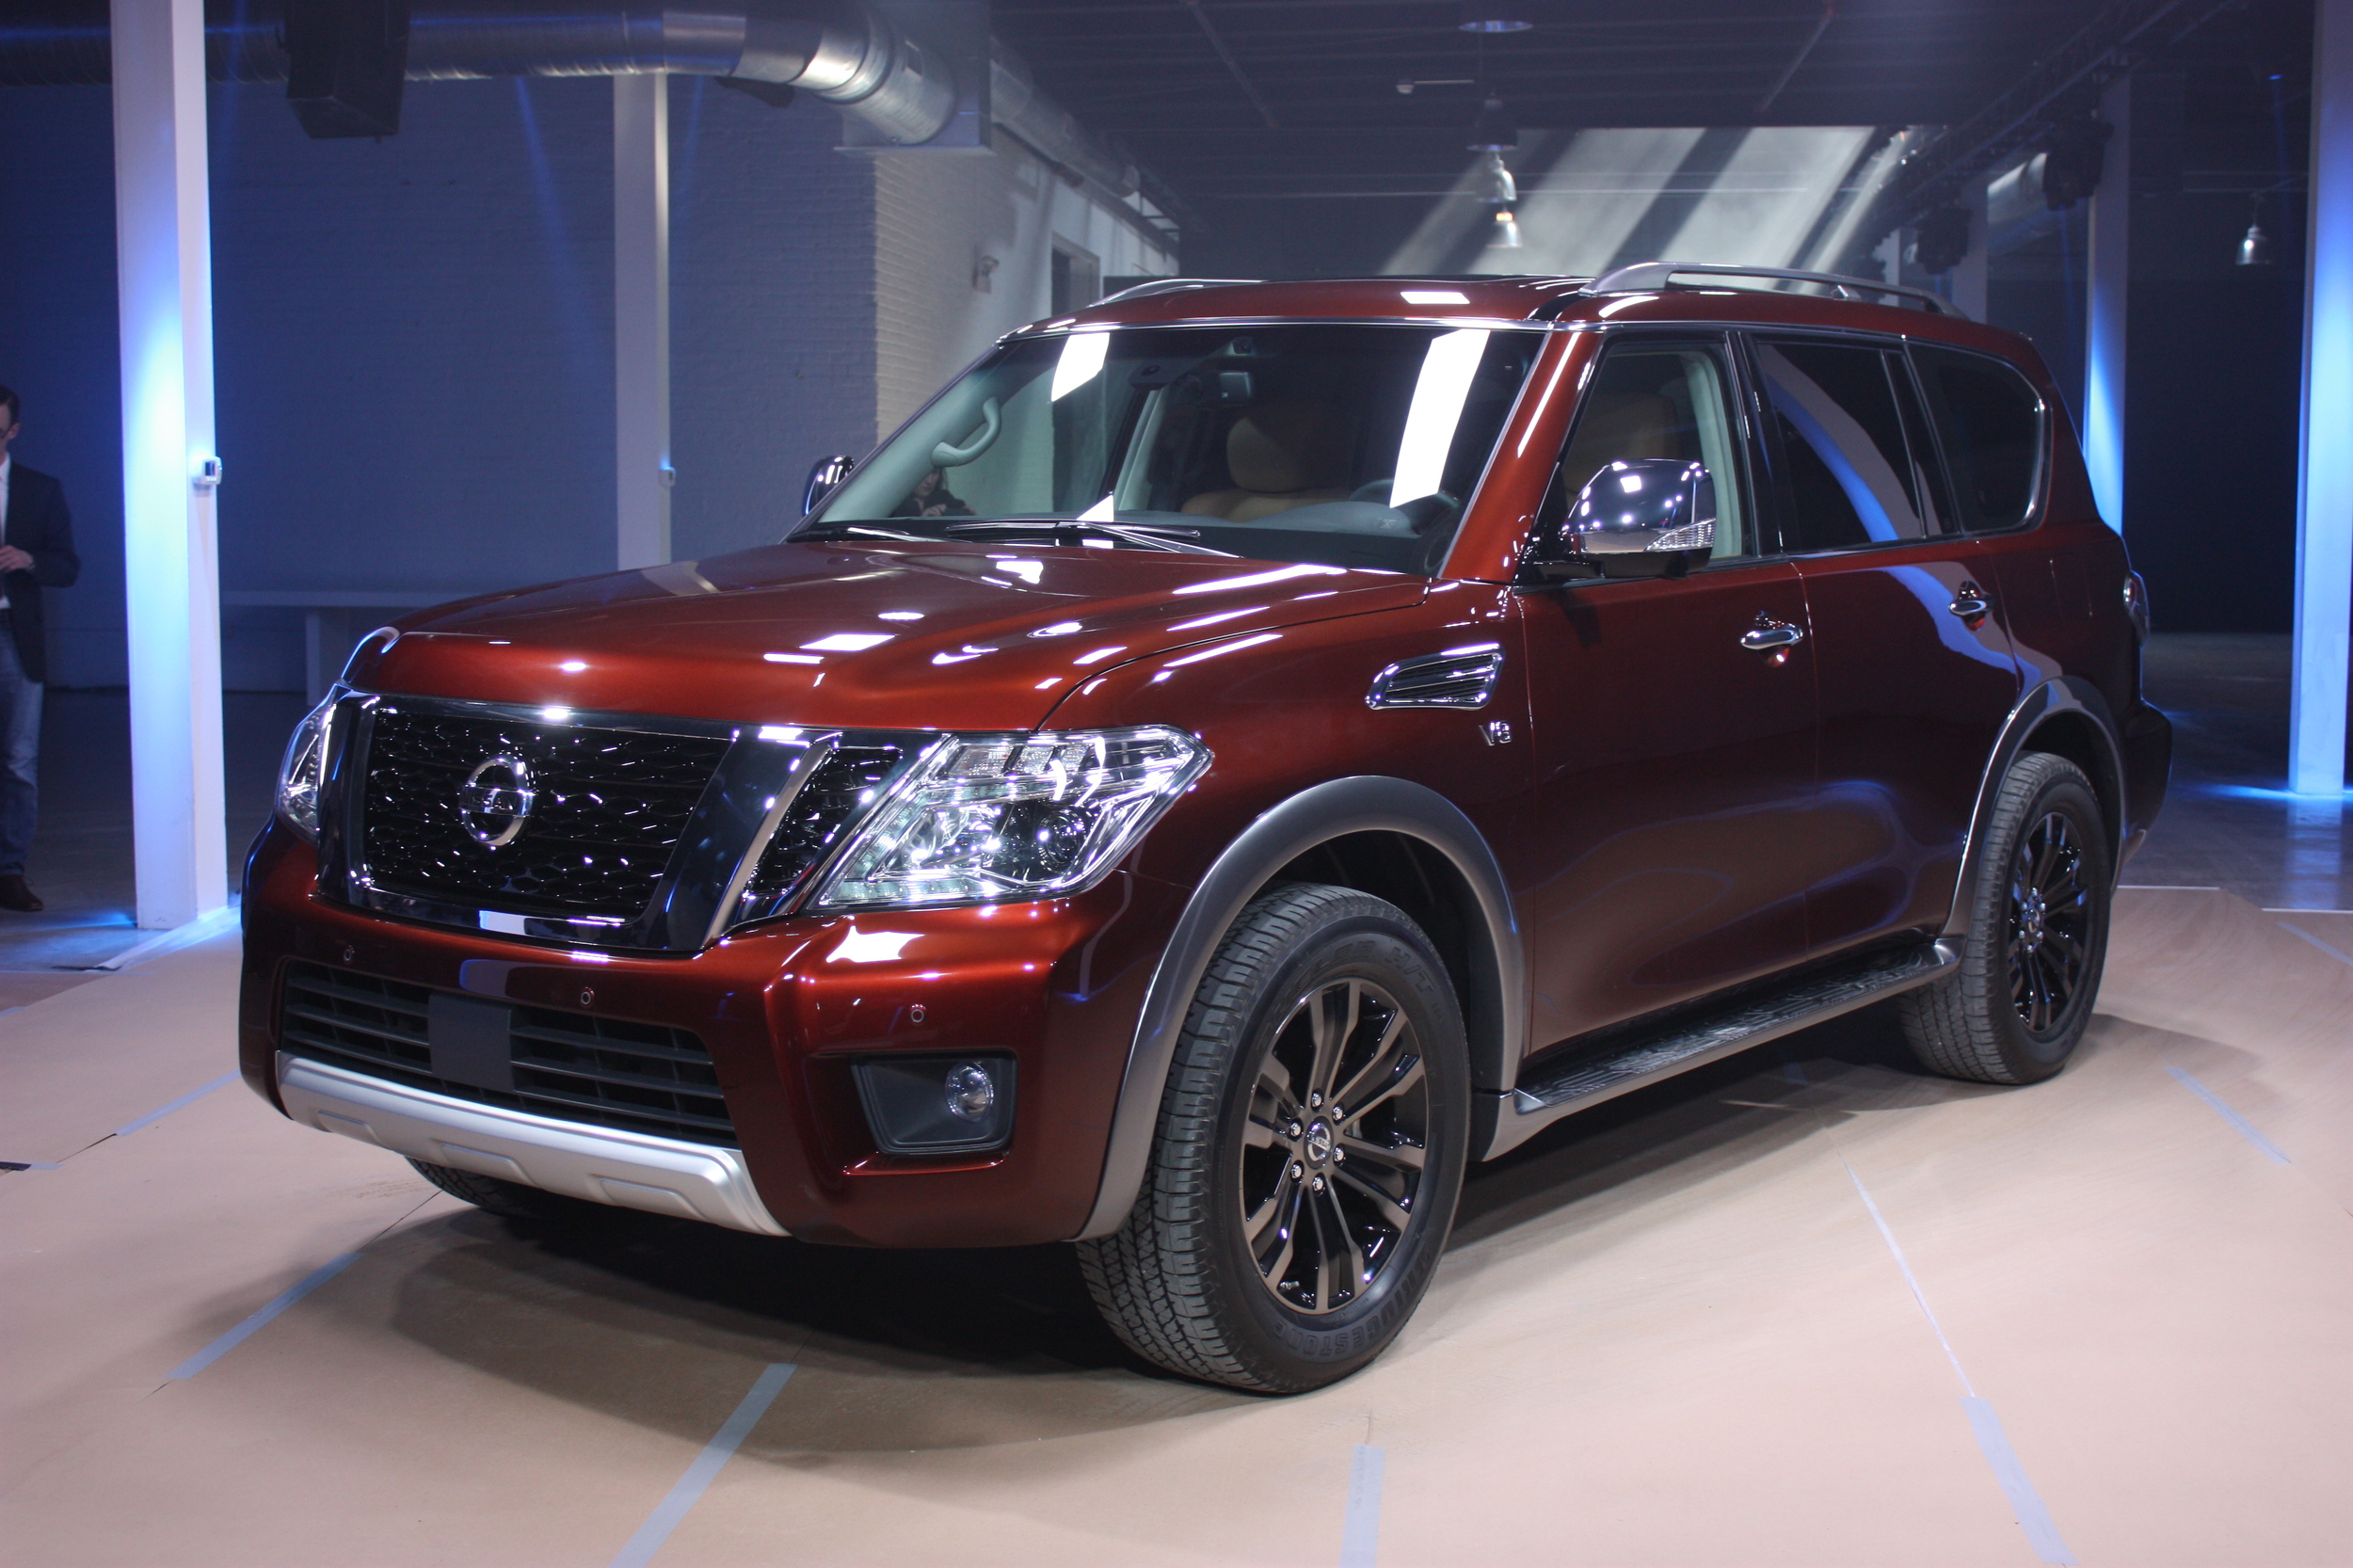 Display Of The 2nd Gen Nissan Armada Jpg